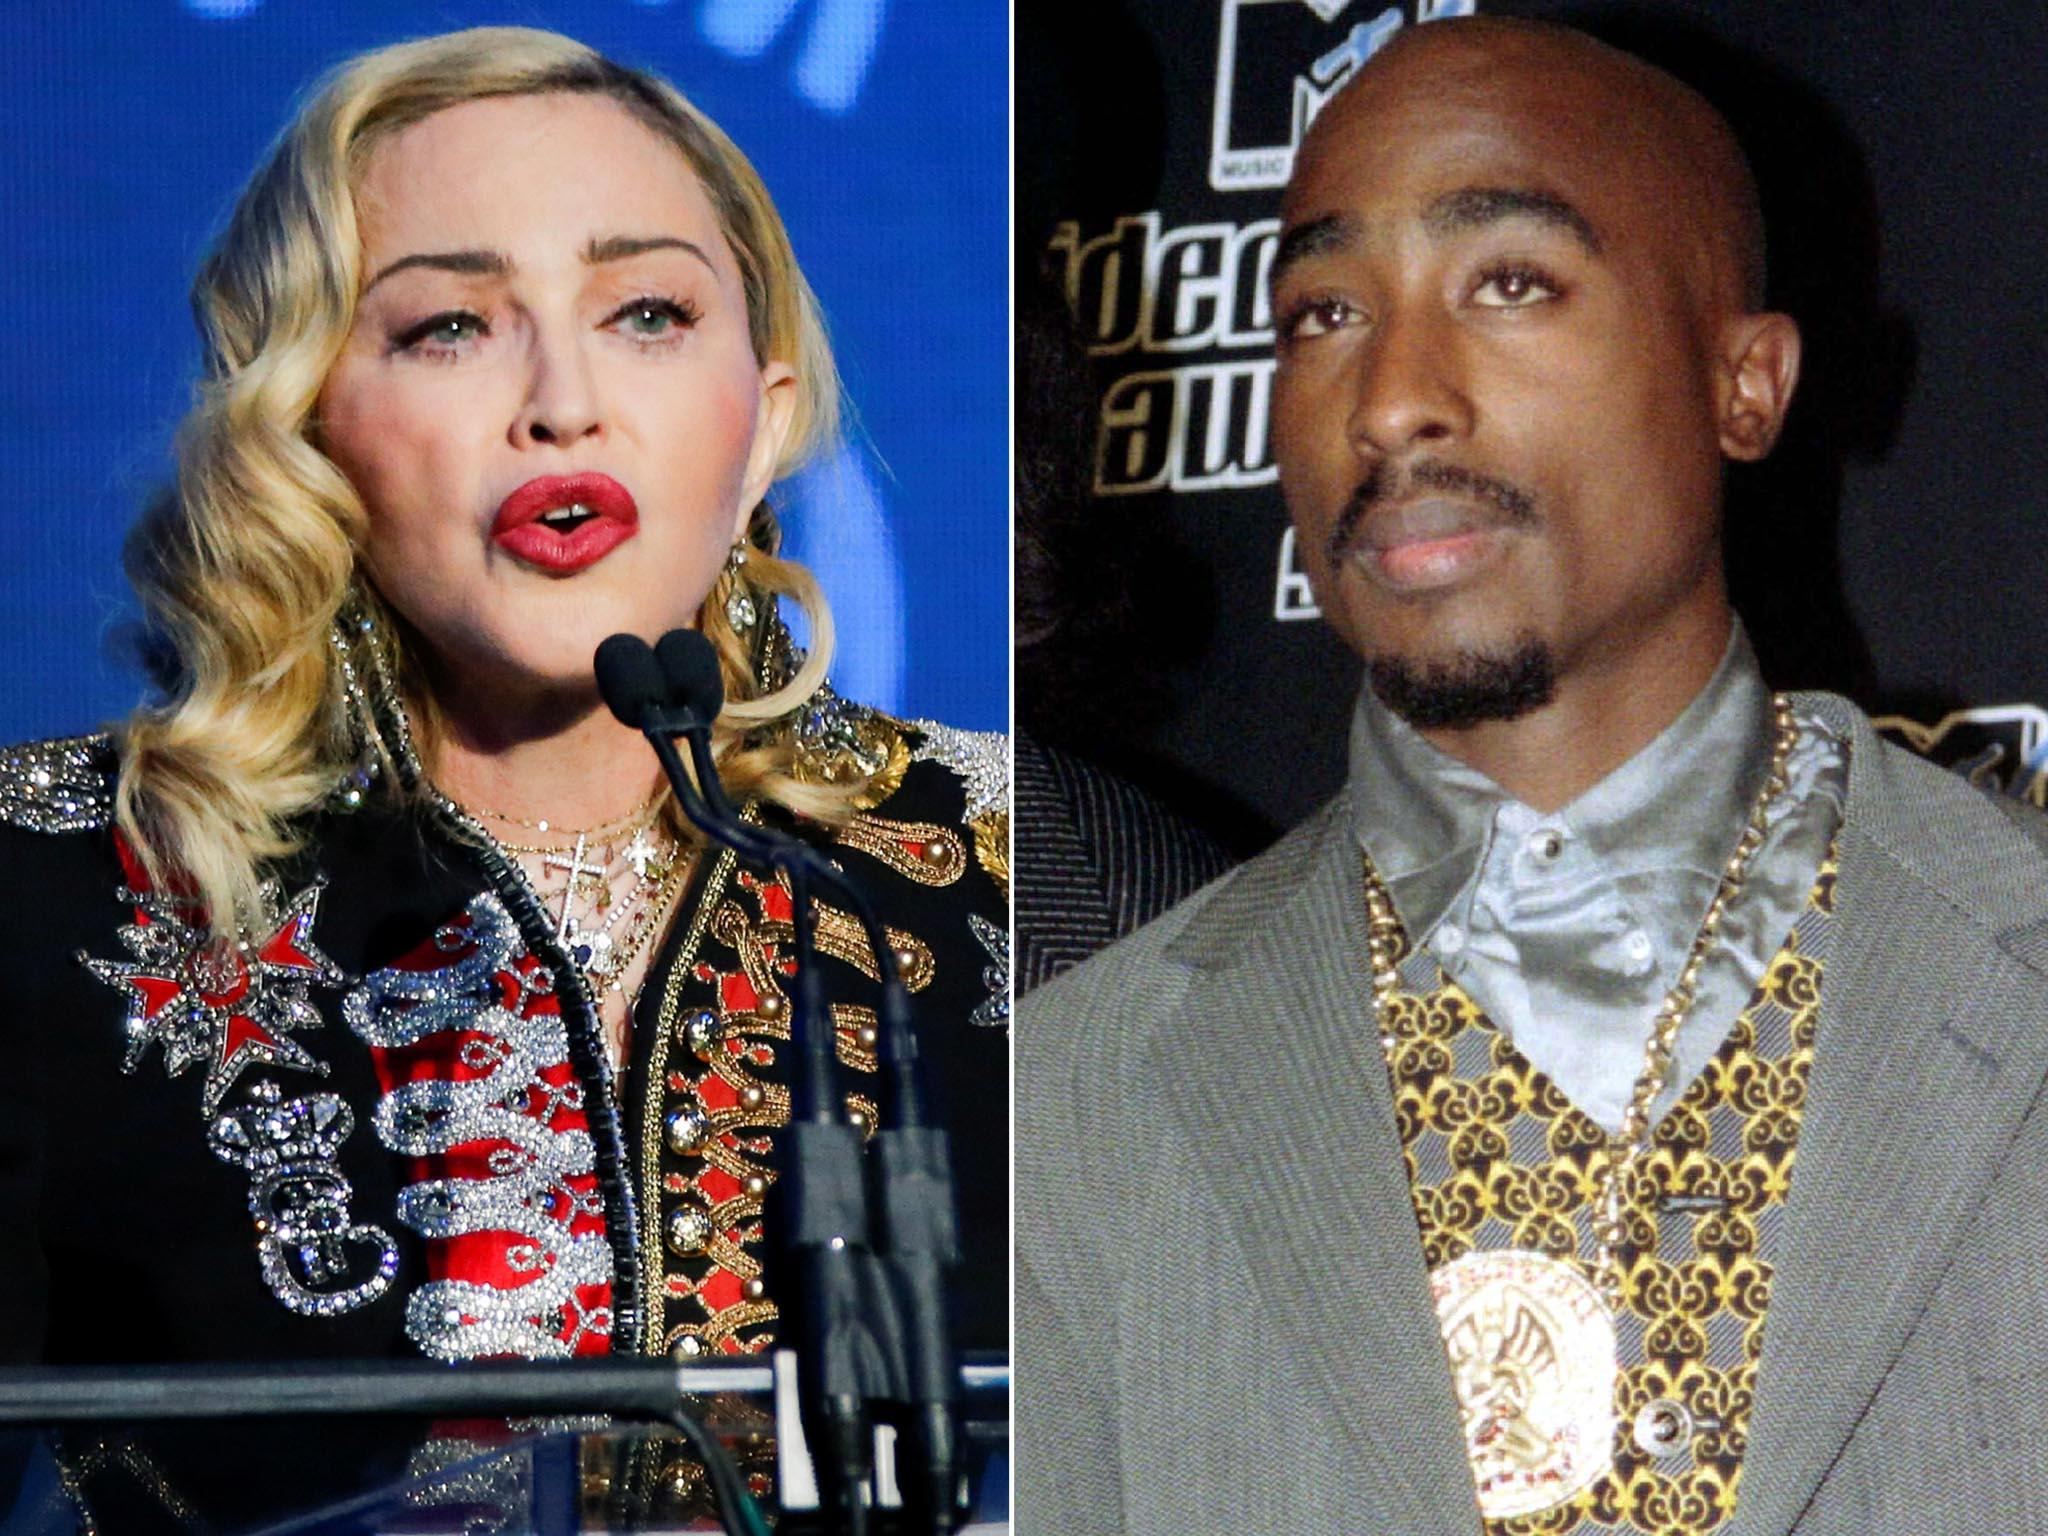 Tupac's break-up letter to Madonna goes to auction, starting